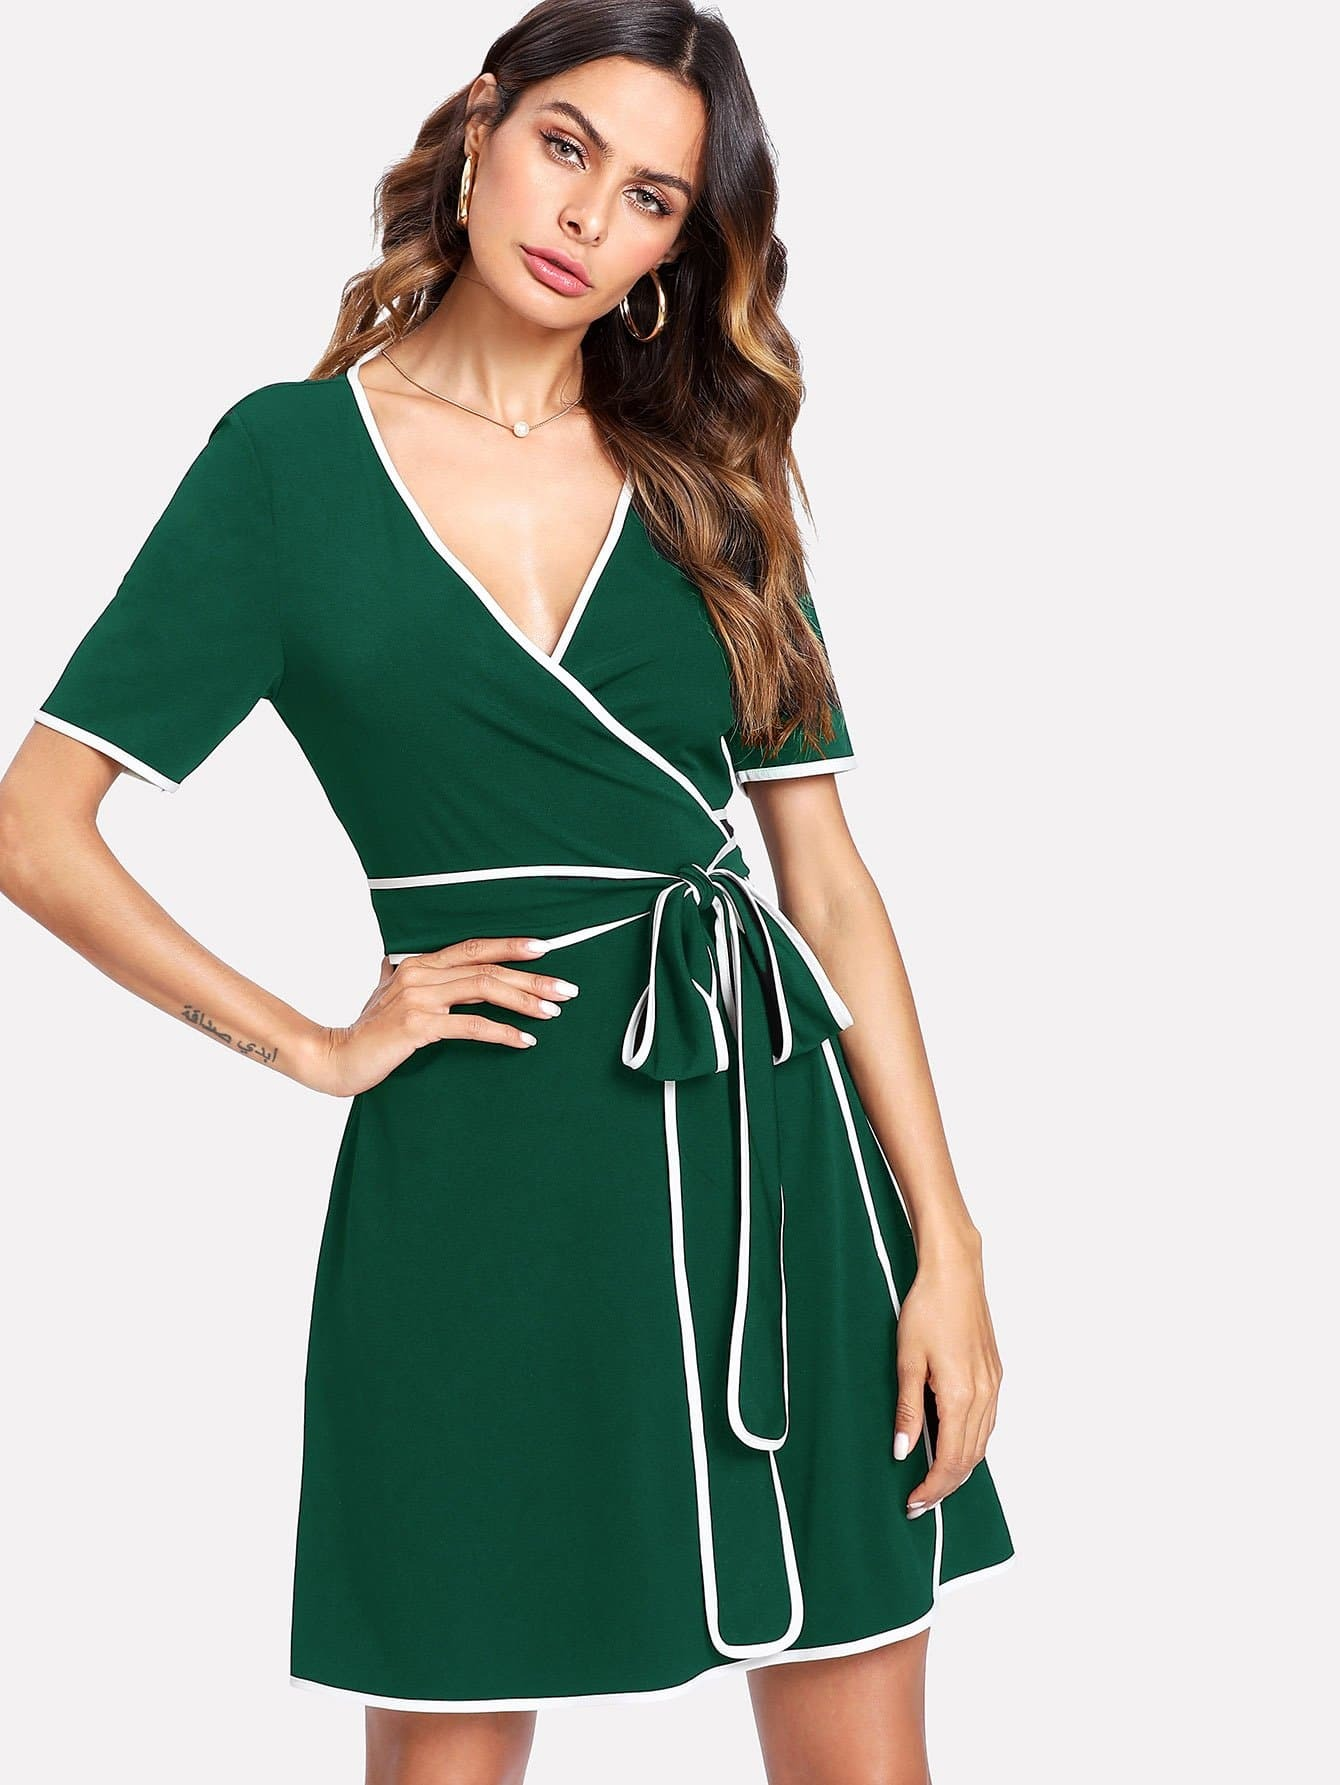 Contrast Binding Wrap Dress contrast binding wrap dress